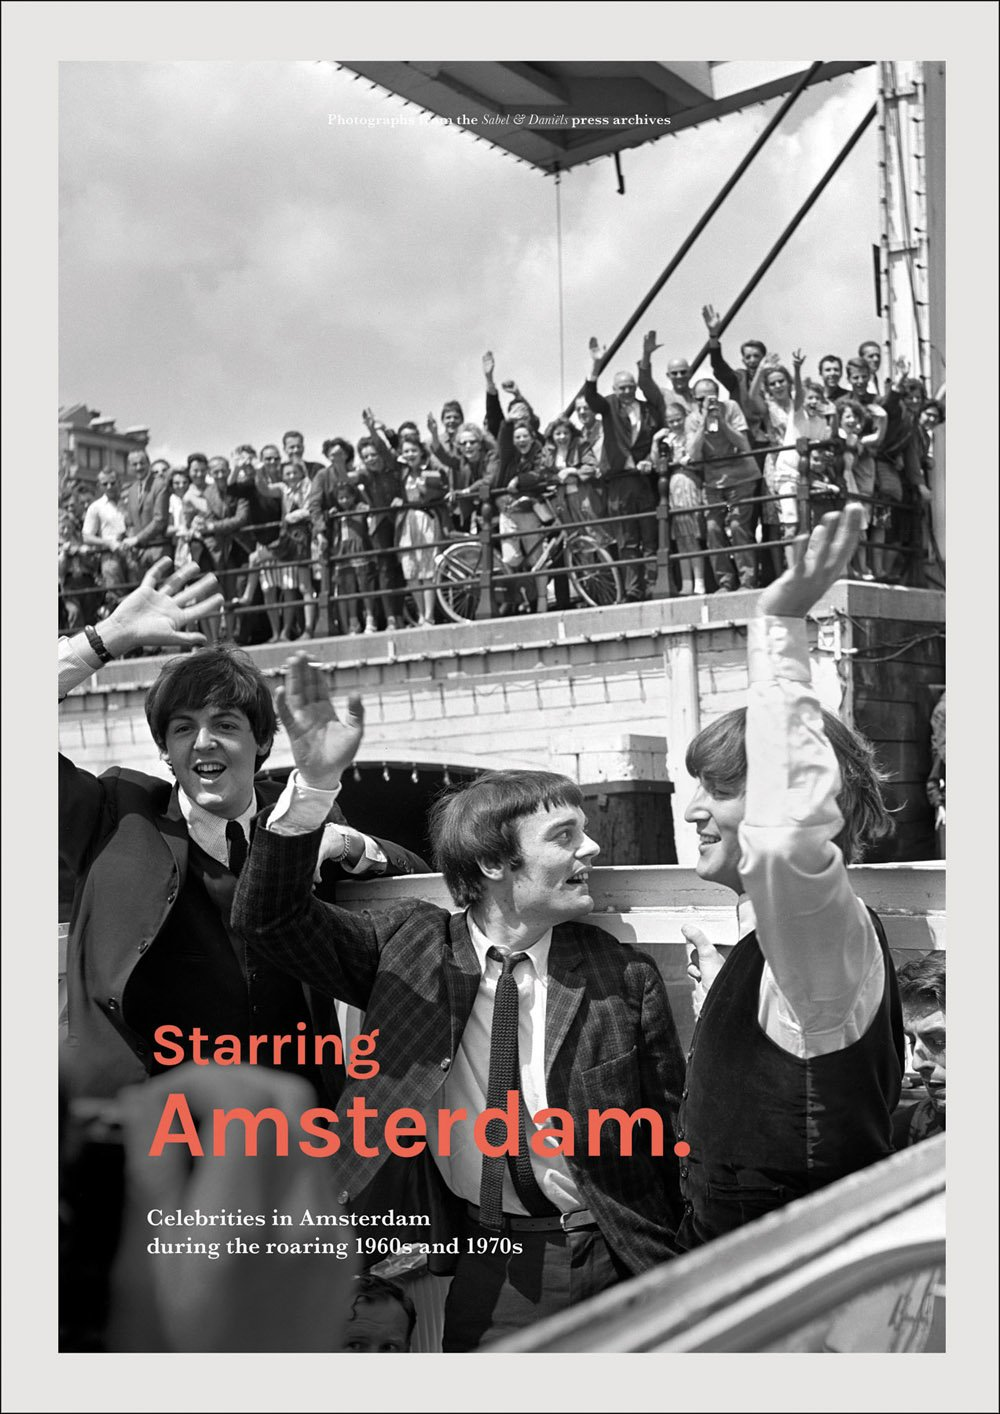 Starring Amsterdam: Celebrities in Amsterdam during the roaring 1960s and 1970s